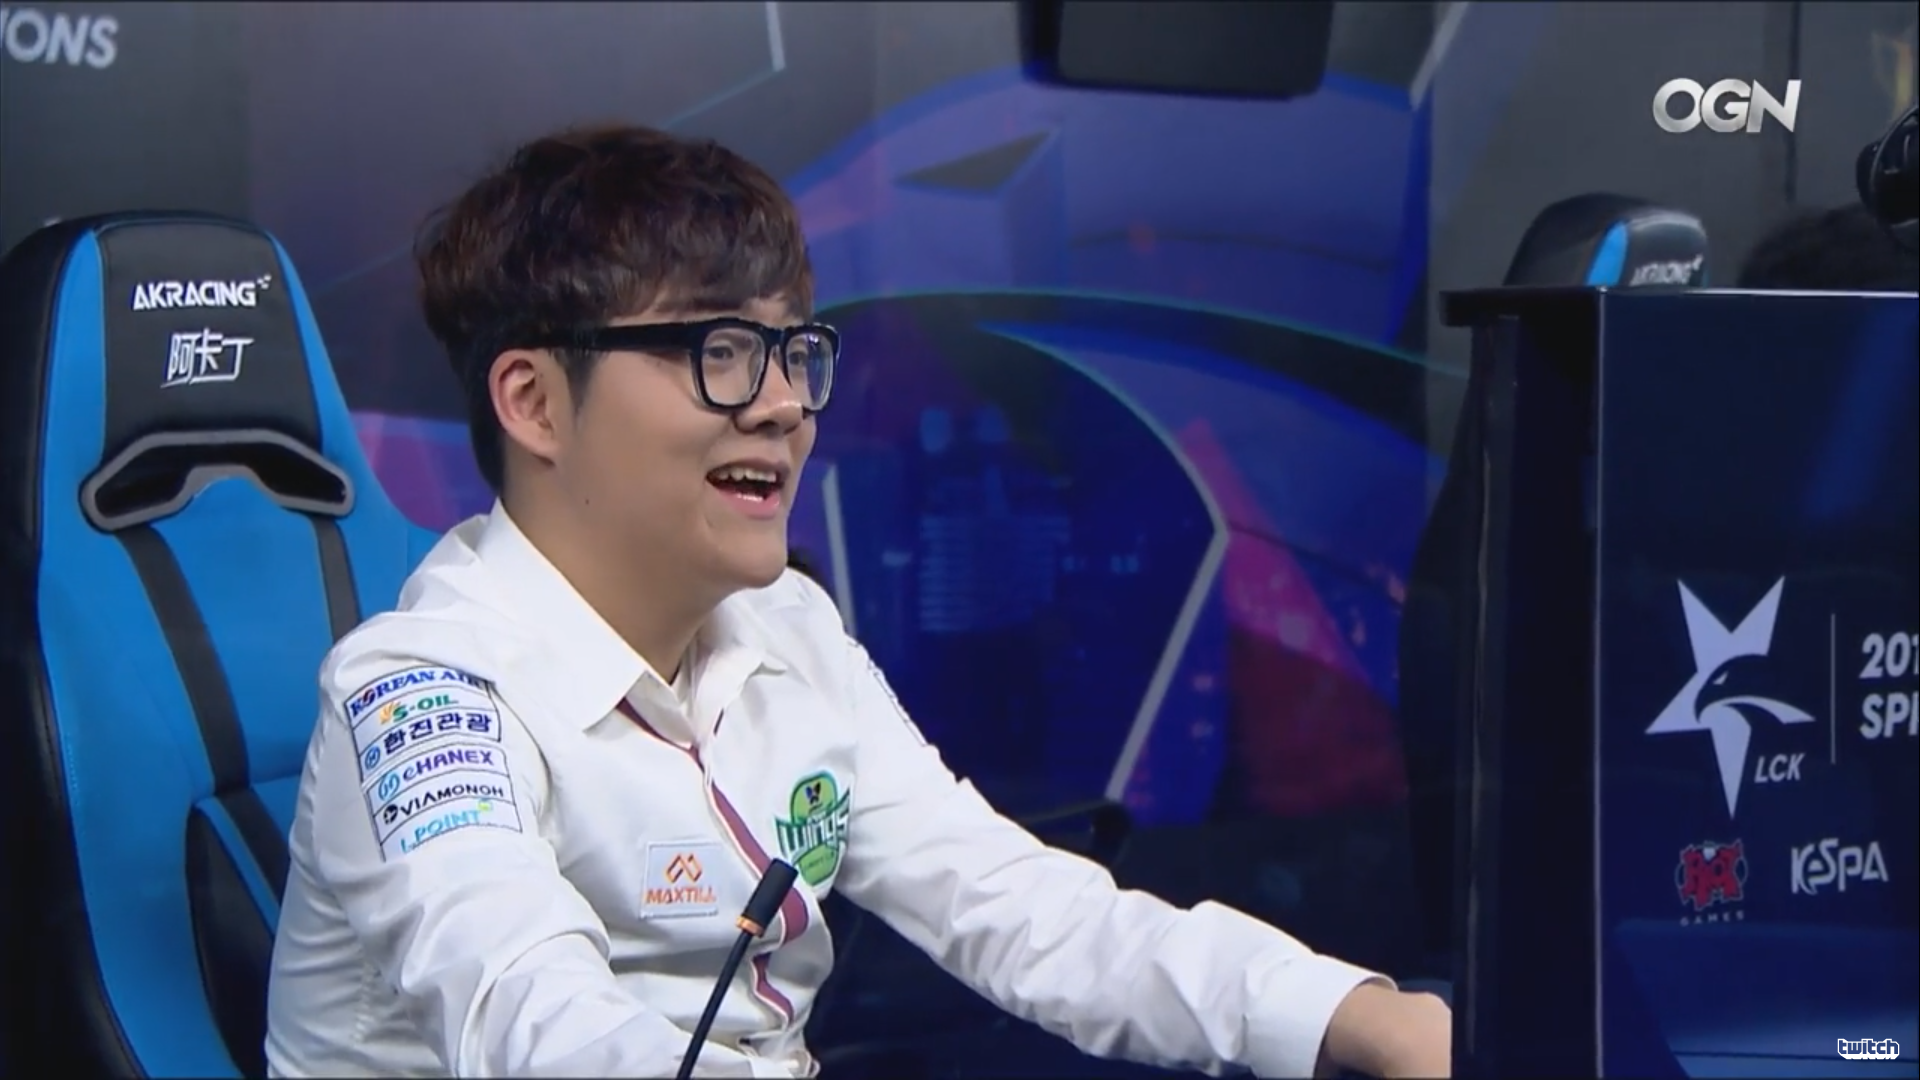 Longest Game In Pro League Of Legends History Shatters Records